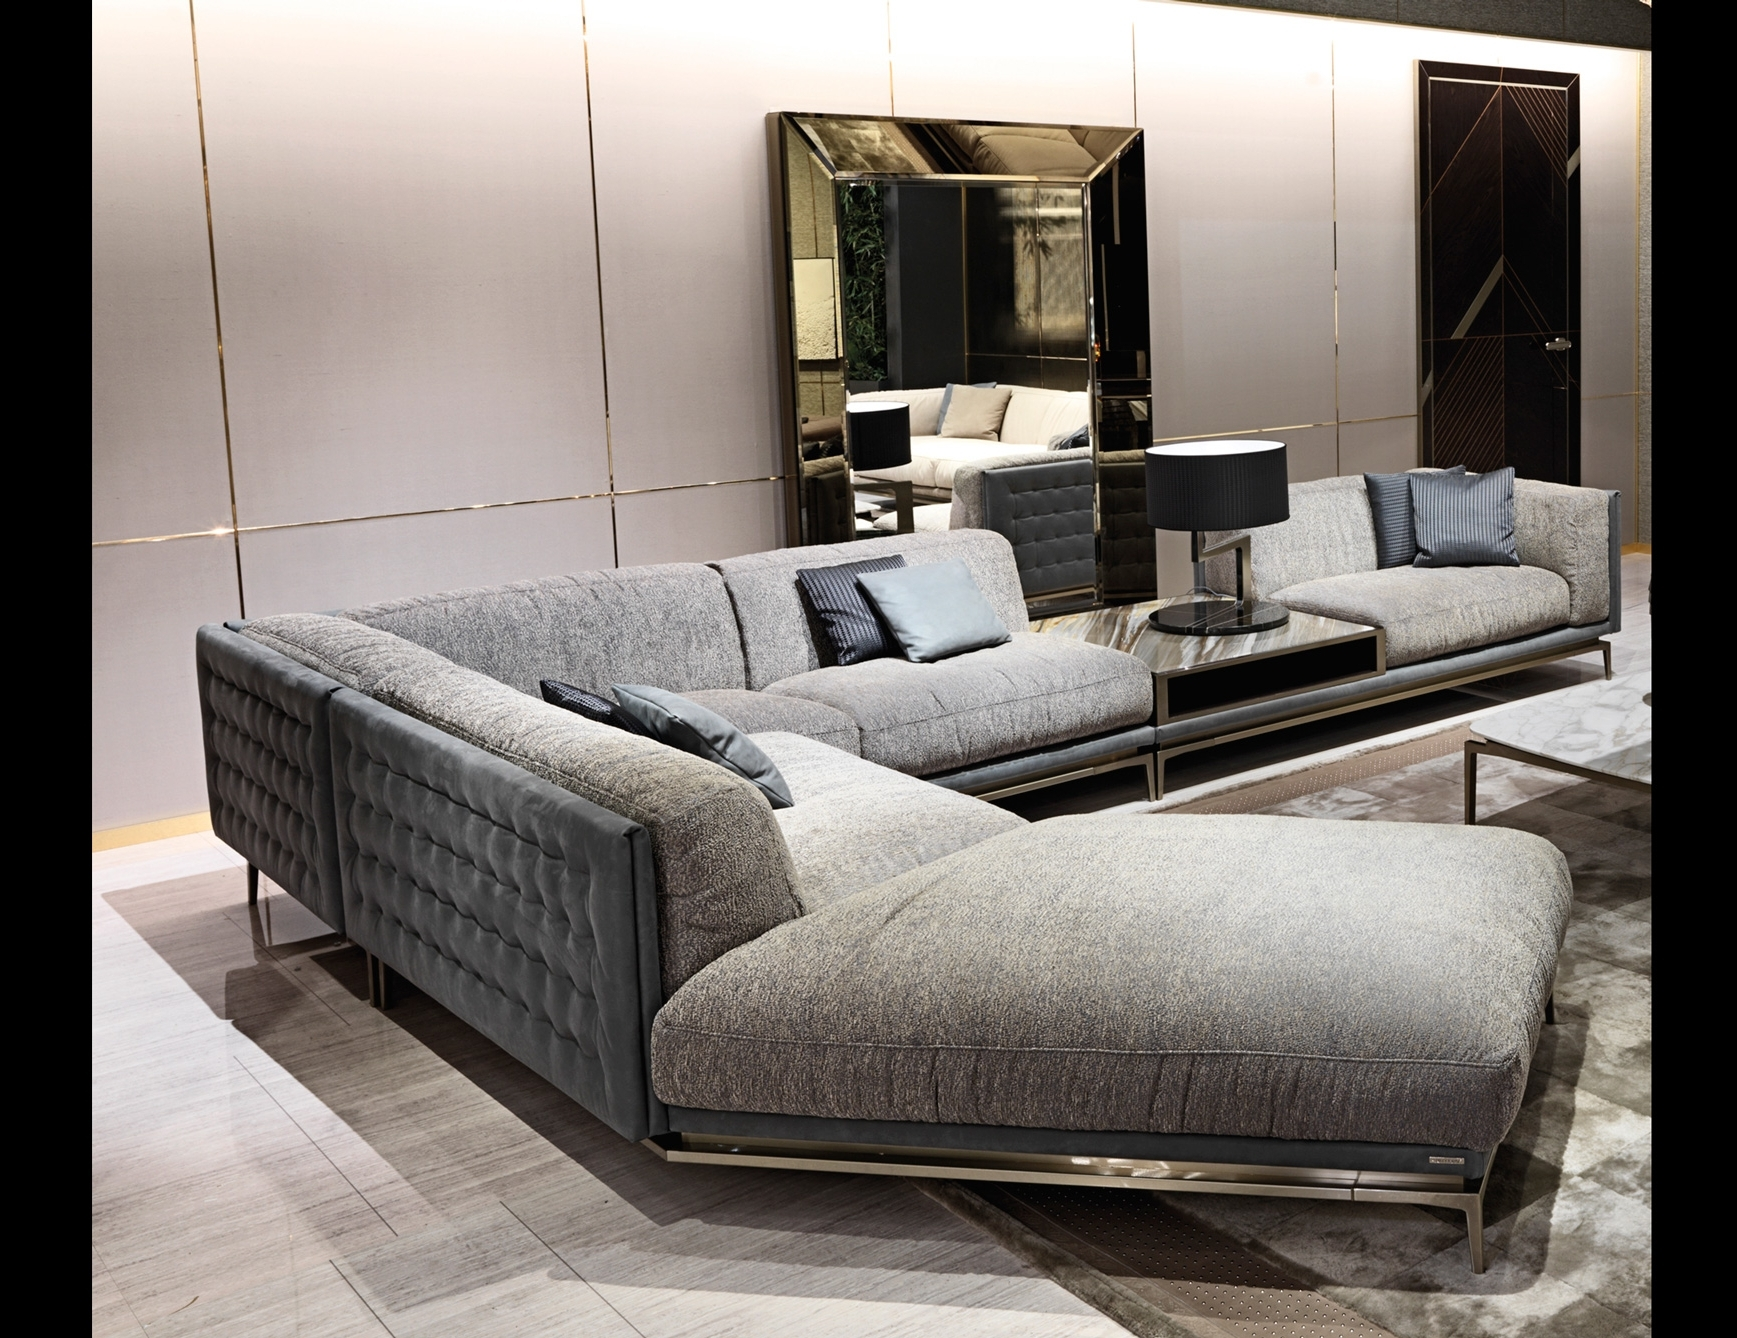 Italian Designer Luxury High End Sofas & Sofa Chairs: Nella Vetrina Regarding Fashionable High End Sectional Sofas (View 13 of 20)